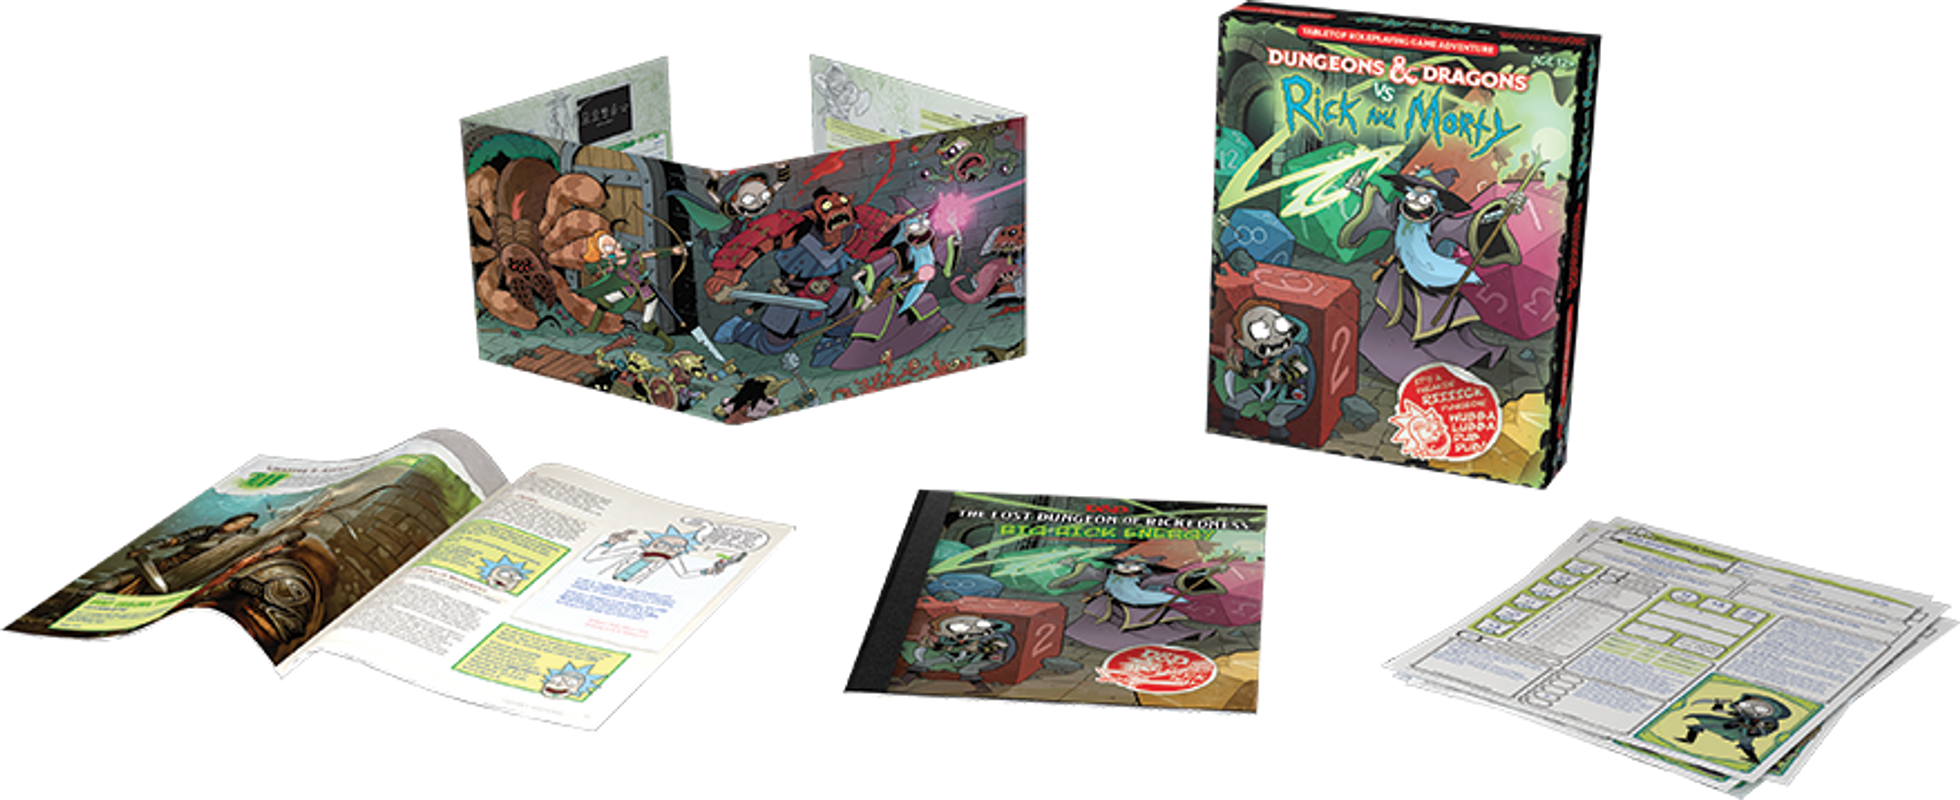 Dungeons & Dragons vs. Rick and Morty components